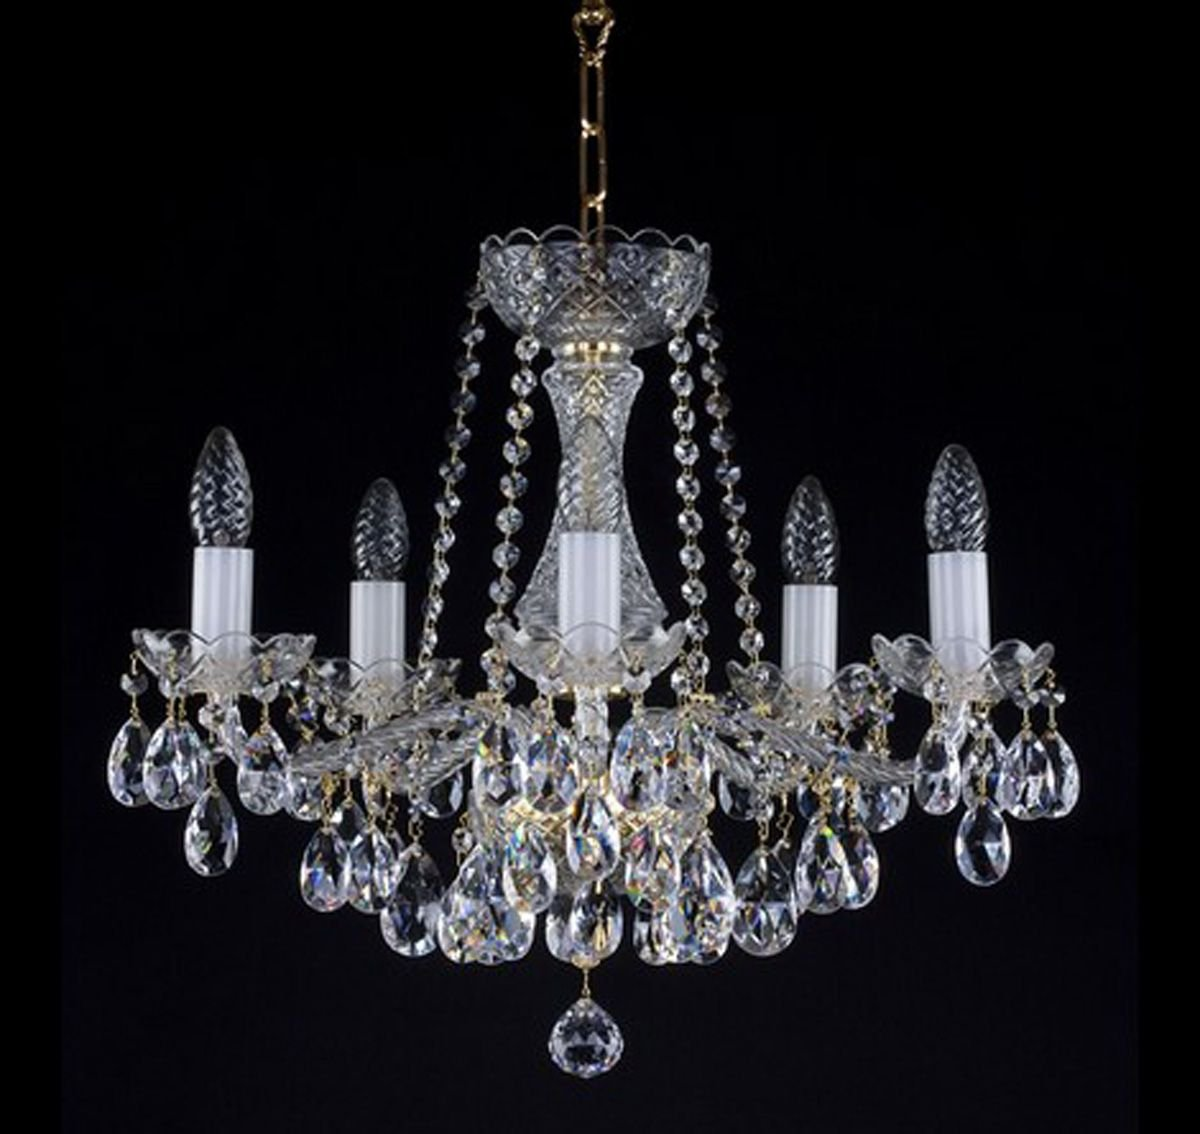 Beautiful 5 Arm Crystal Chandelier Ceiling Chandeliers